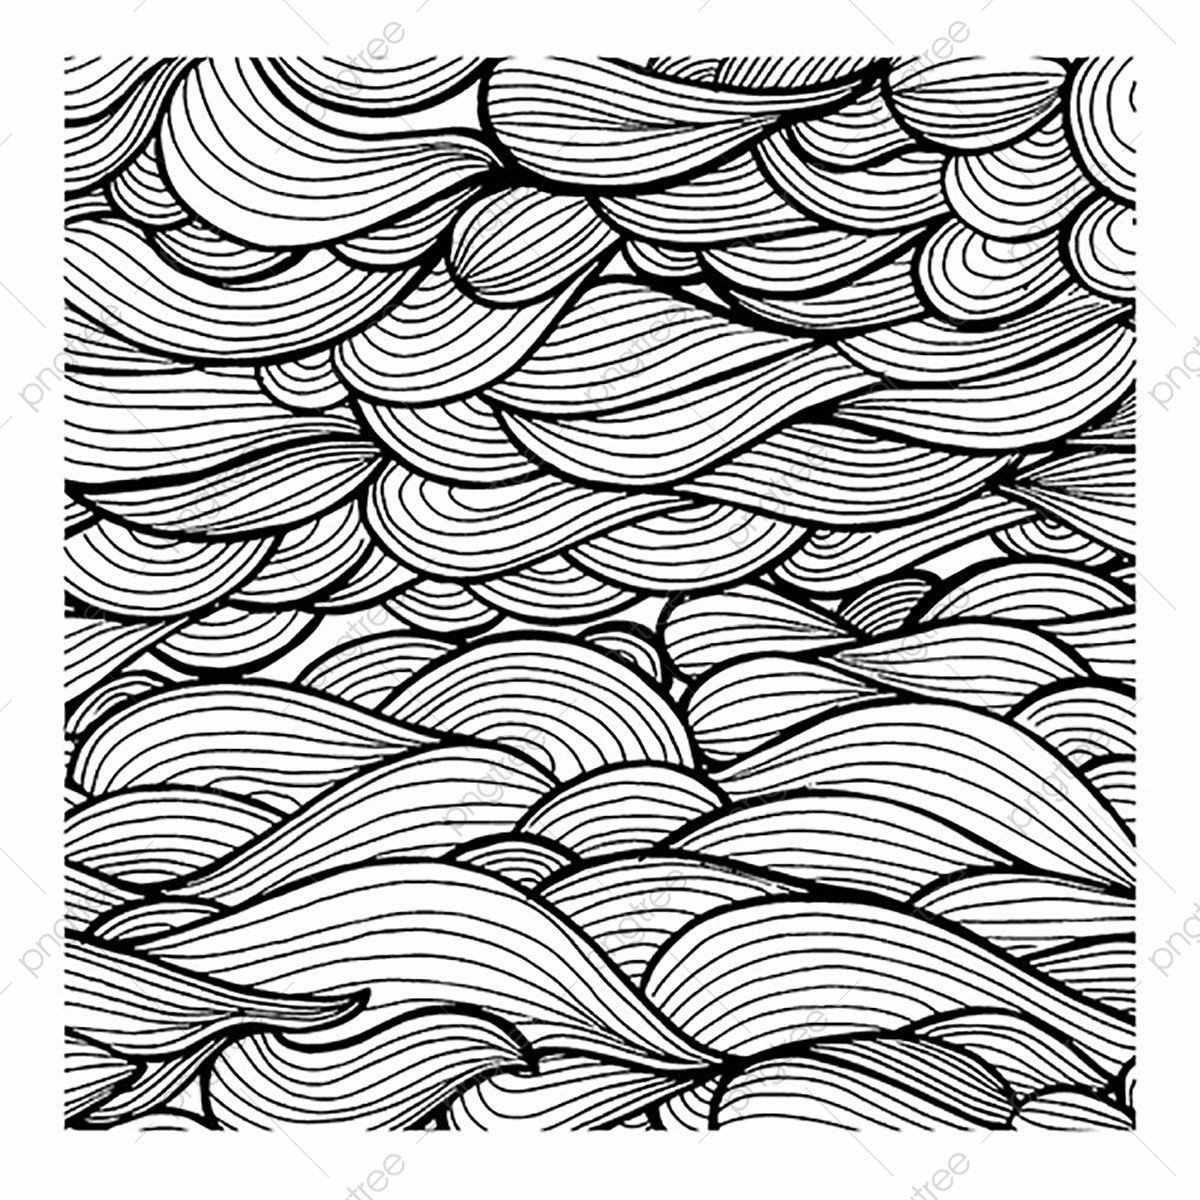 Download 9900 Background Art Black And White Gratis Terbaik